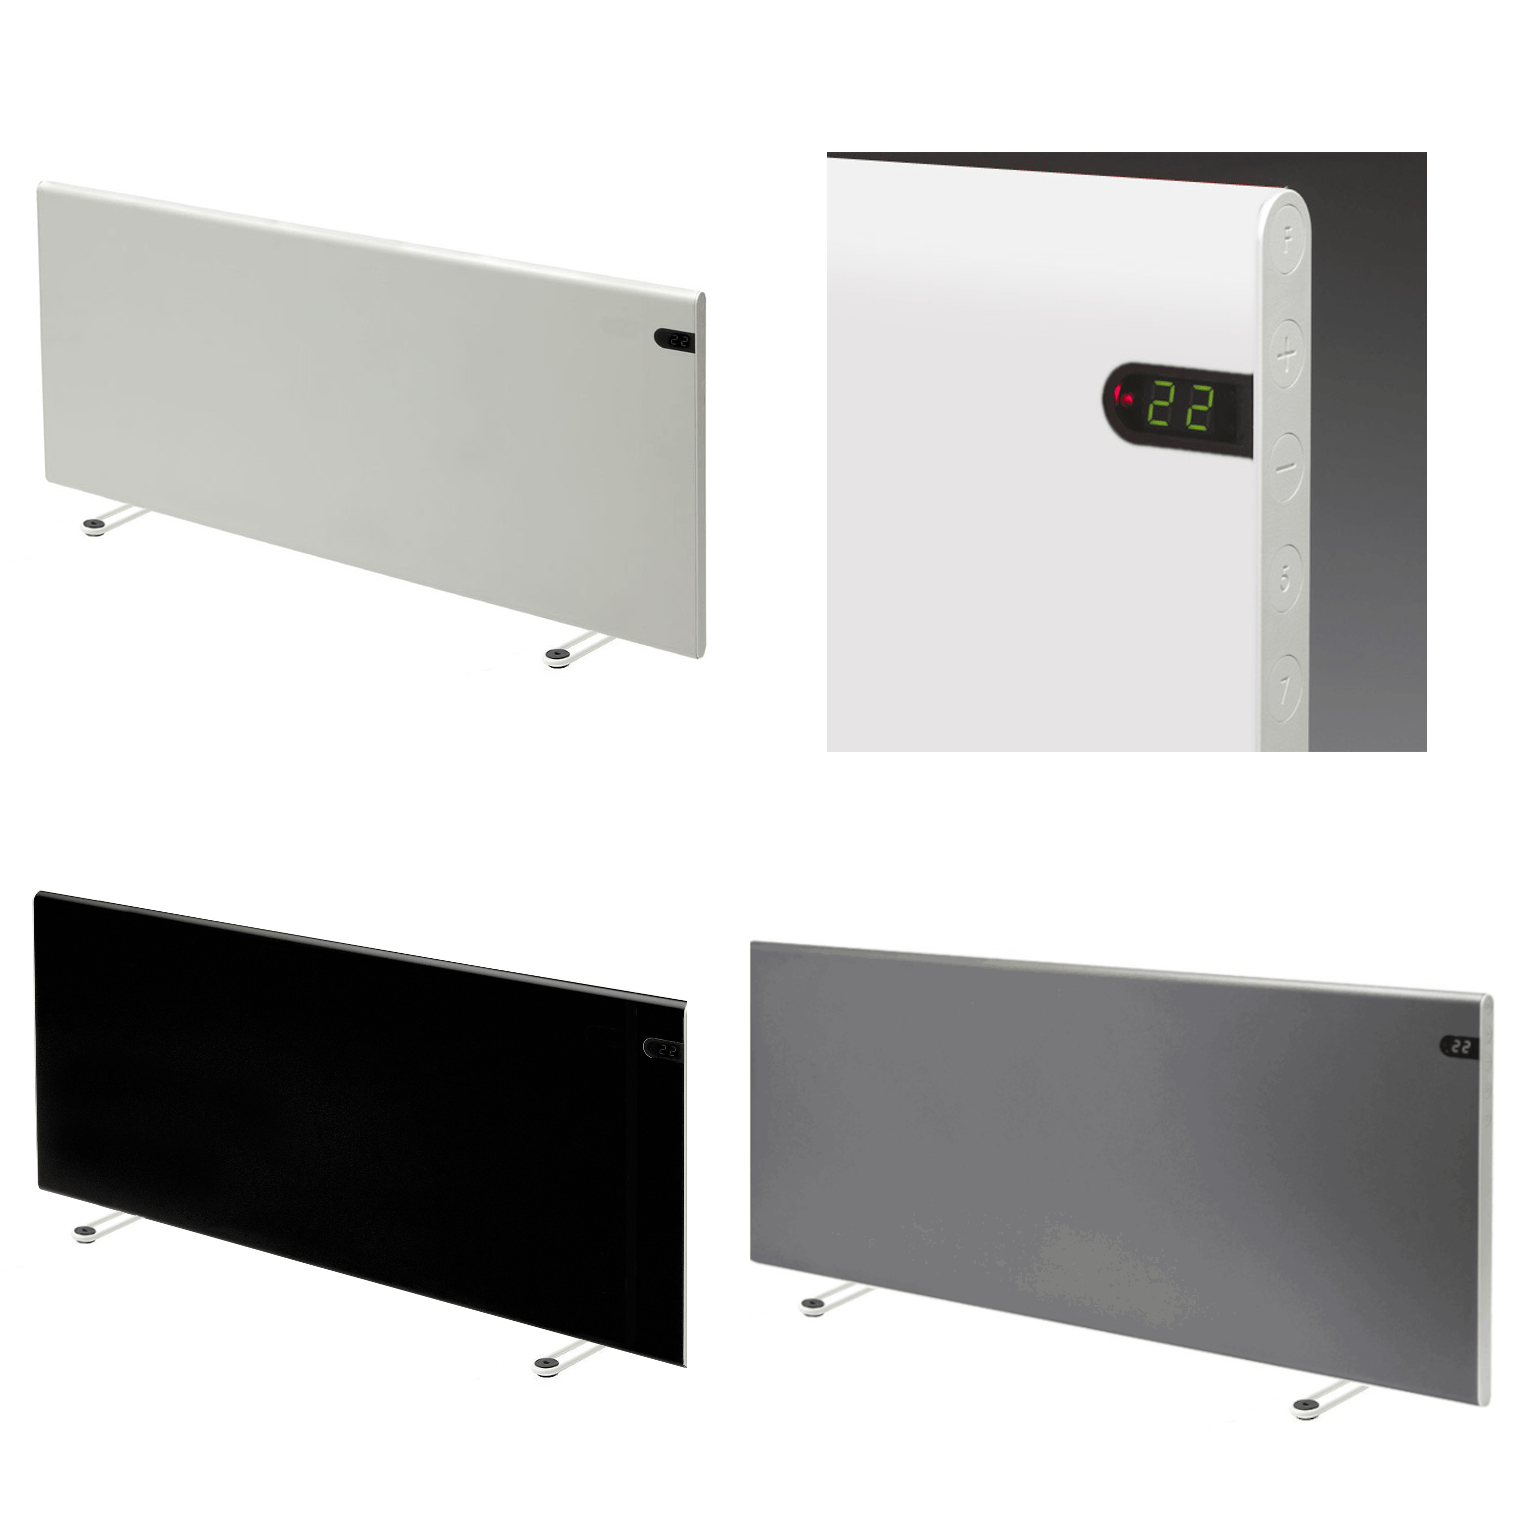 Adax Neo Portable Electric Heater With Timer, Modern Convector Radiator